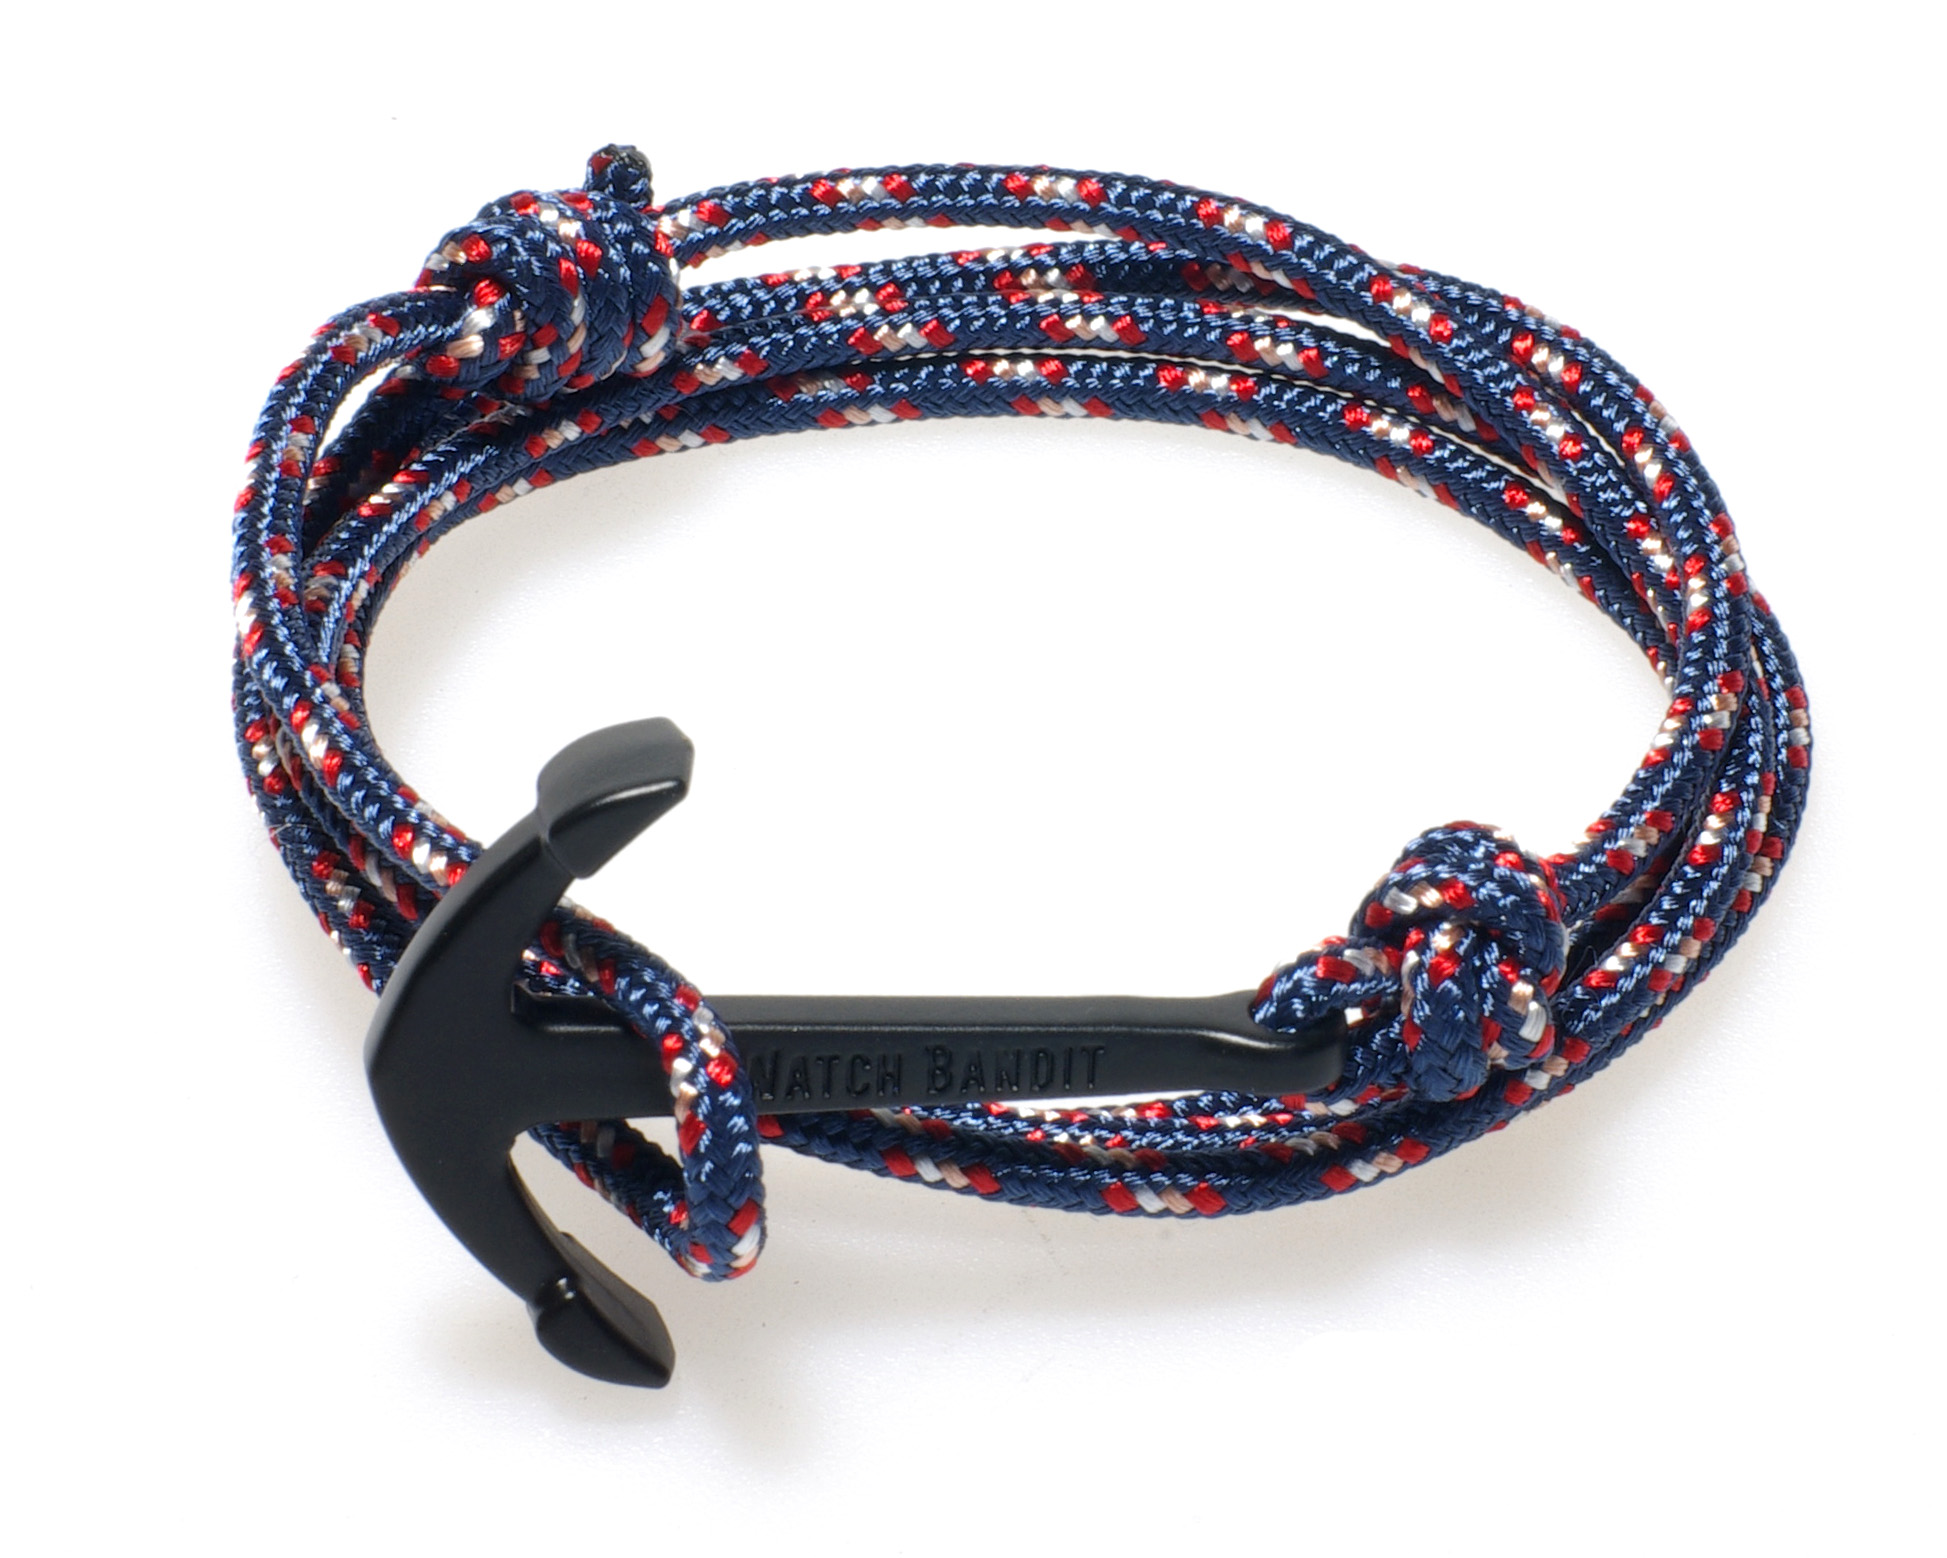 il bracelet rope mens fullxfull listing nautical sailor gift knot mennautical braceletgift for men